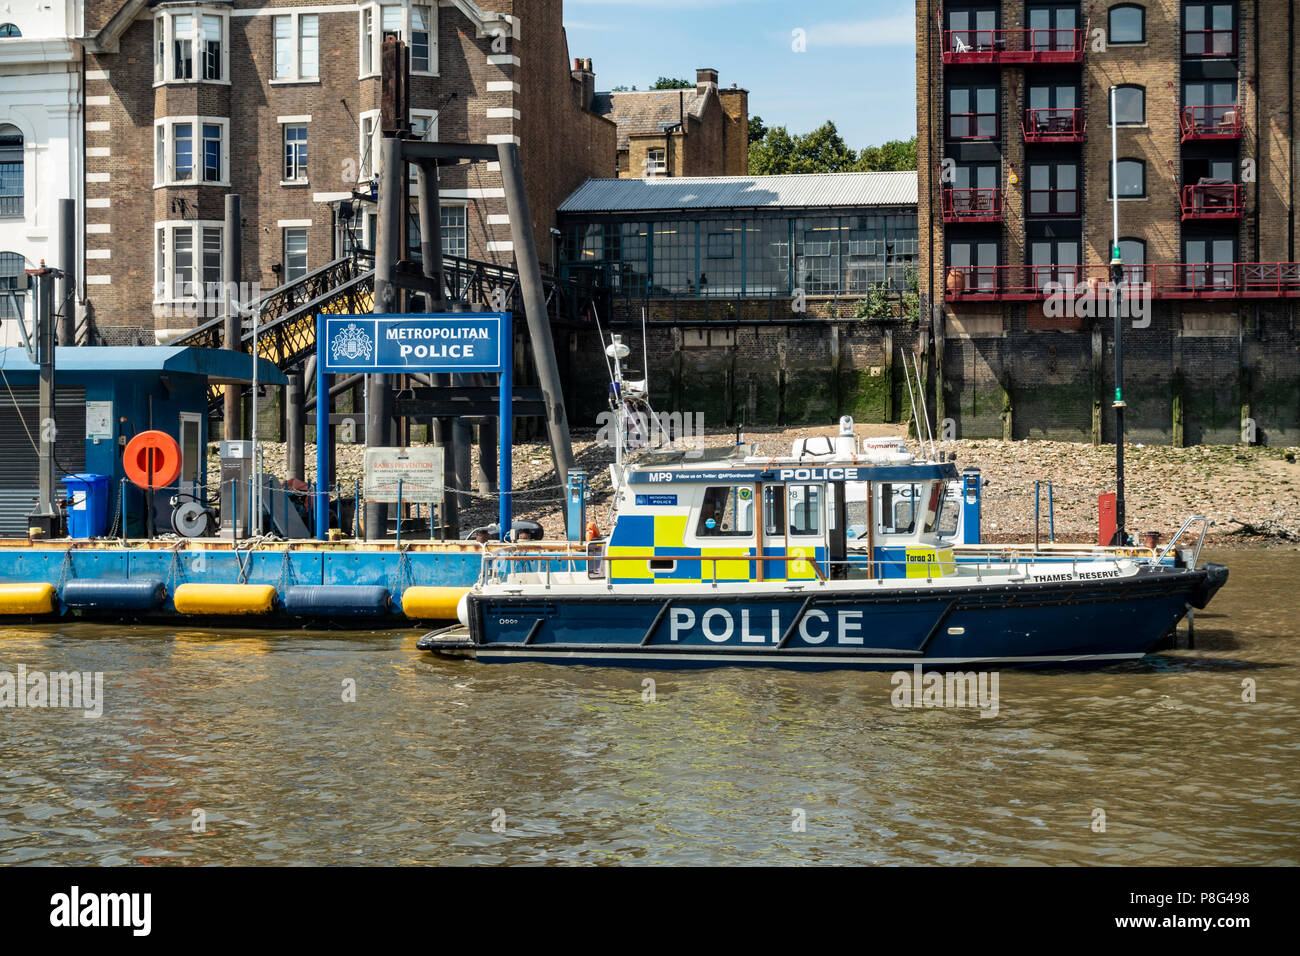 The Metropolitan Police Marine Policing Unit patrol boat MP9: Thames Reserve, moored ready for action at the pier in Wapping, east London. - Stock Image